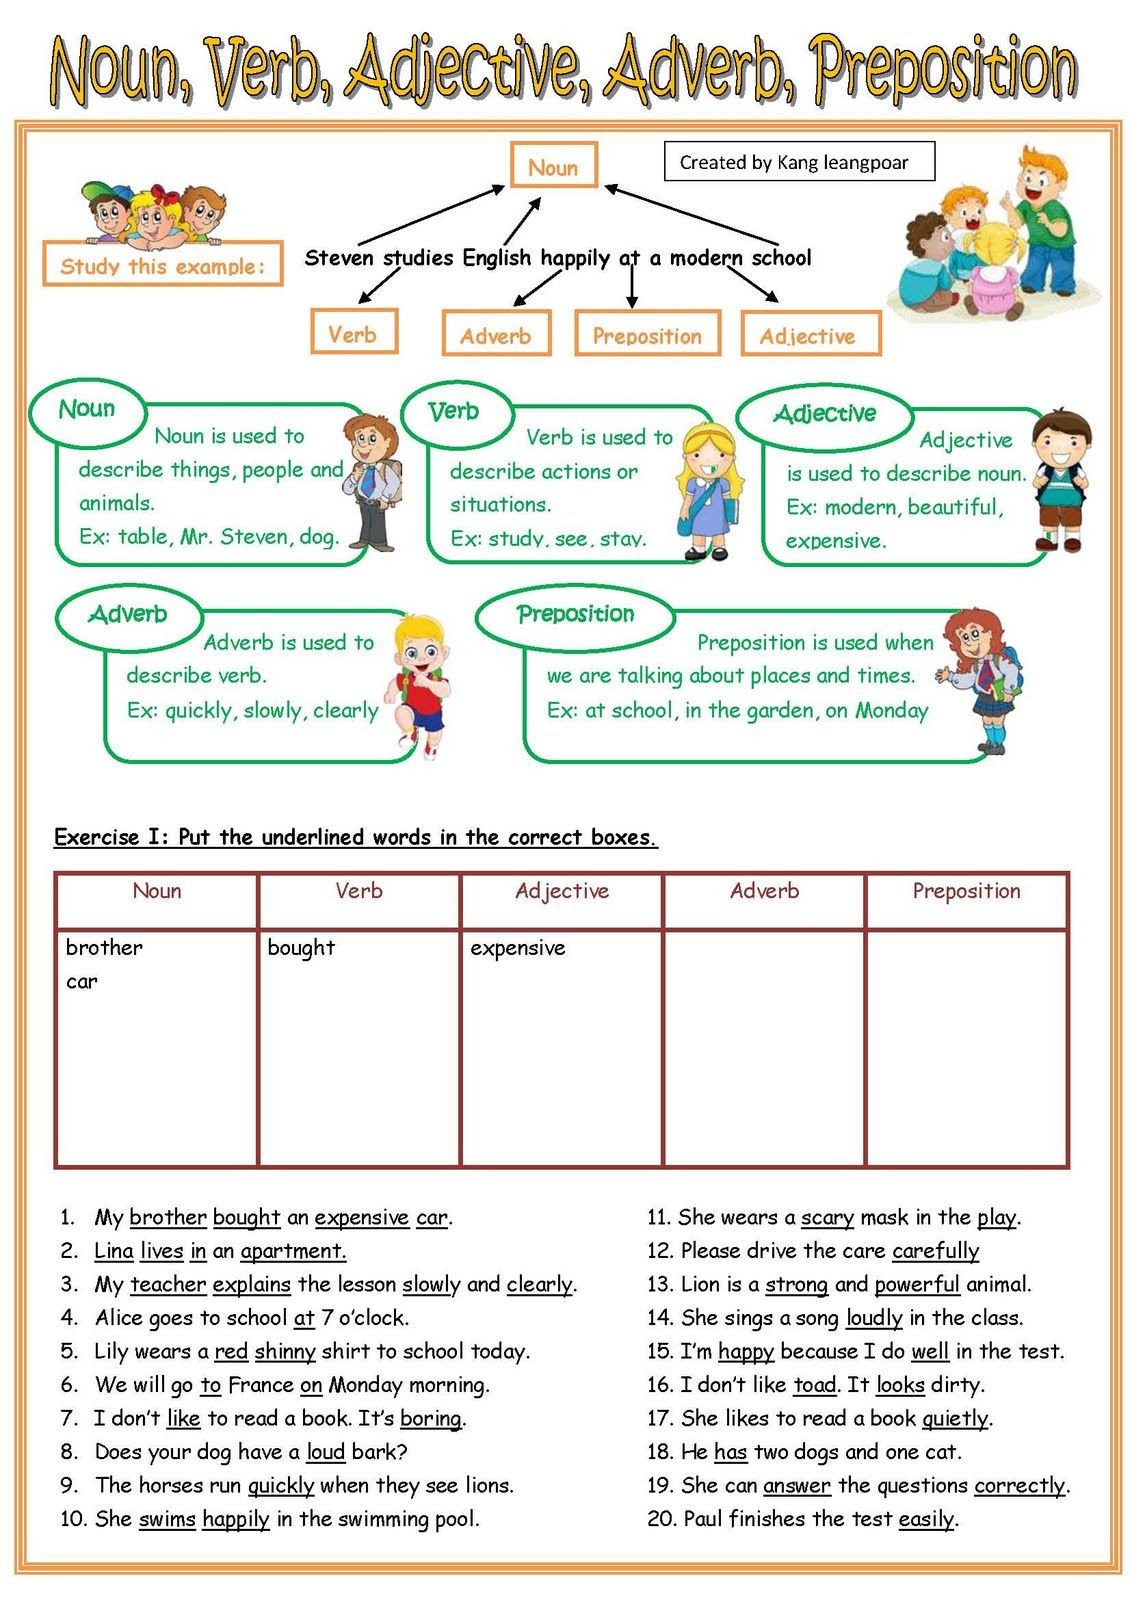 Nouns and Verbs Worksheet Noun Verb Adjective Adverb Pre Page 1 1132—1600